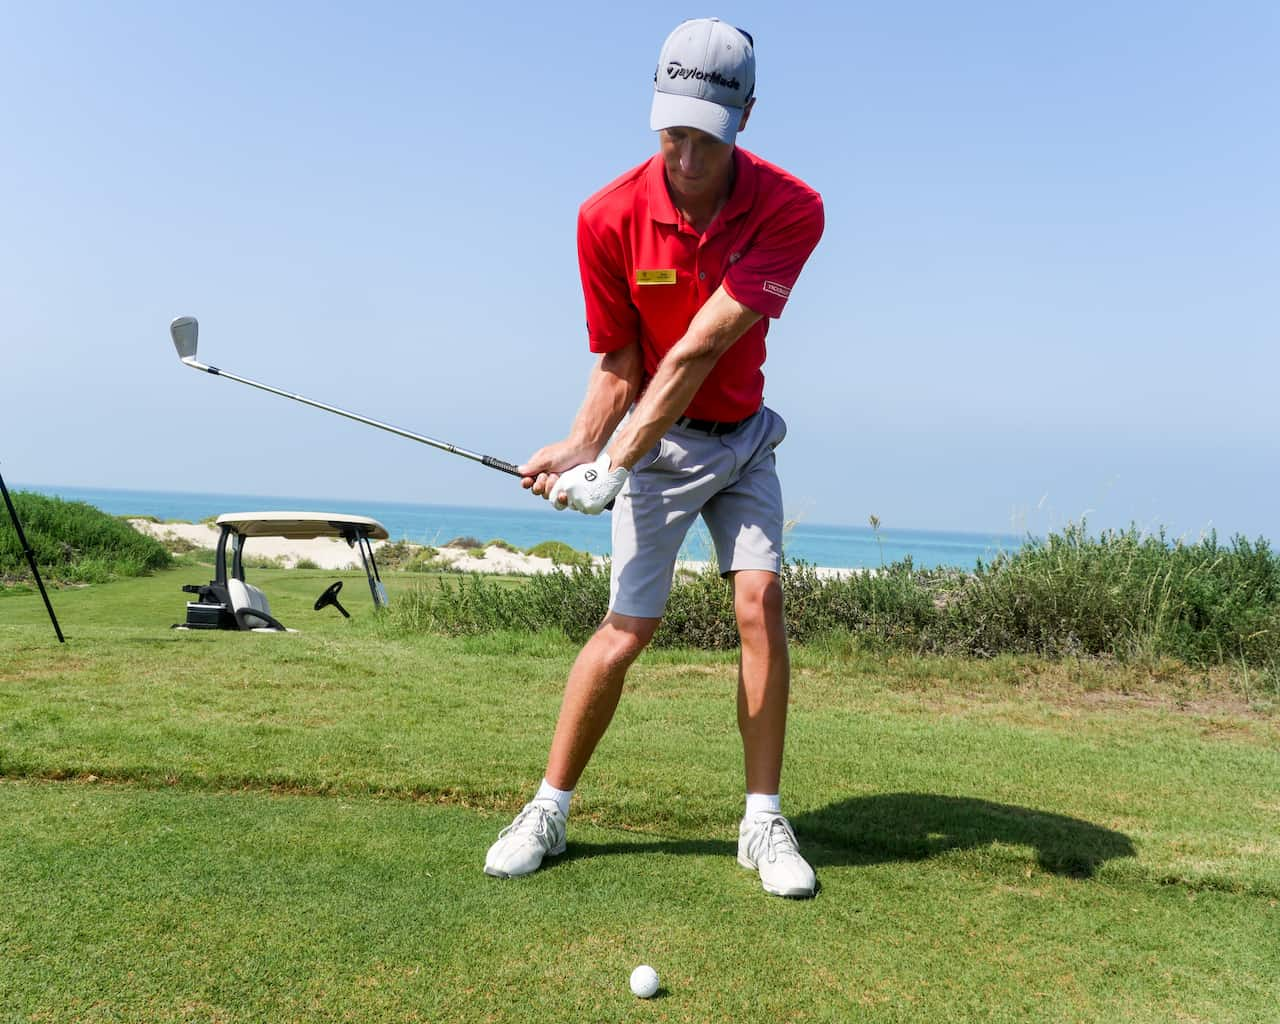 What is Swing Lag and why is it so important?